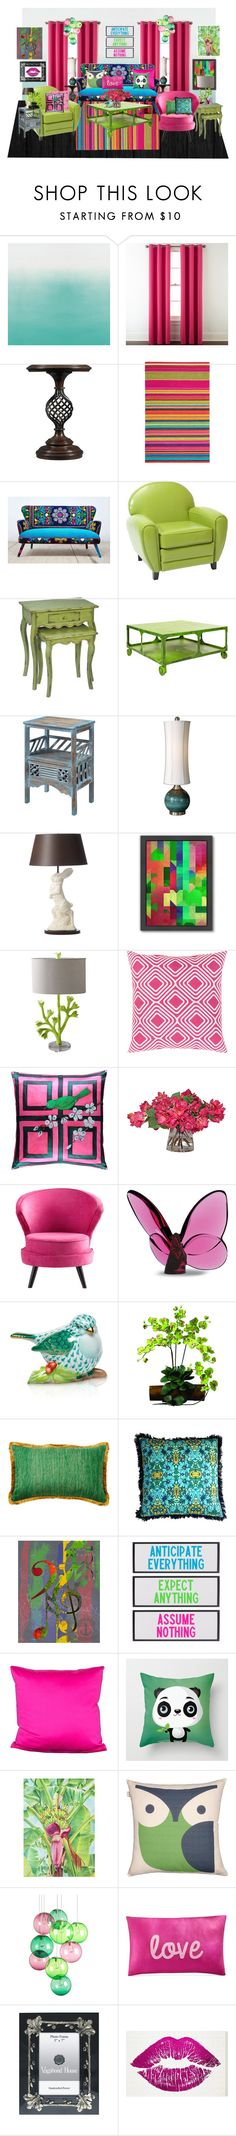 """""""Whimsy"""" by wendy-collins-1 ❤ liked on Polyvore featuring interior, interiors, interior design, home, home decor, interior decorating, Designers Guild, Home Expressions, Stanley Furniture and Brink & Campman"""